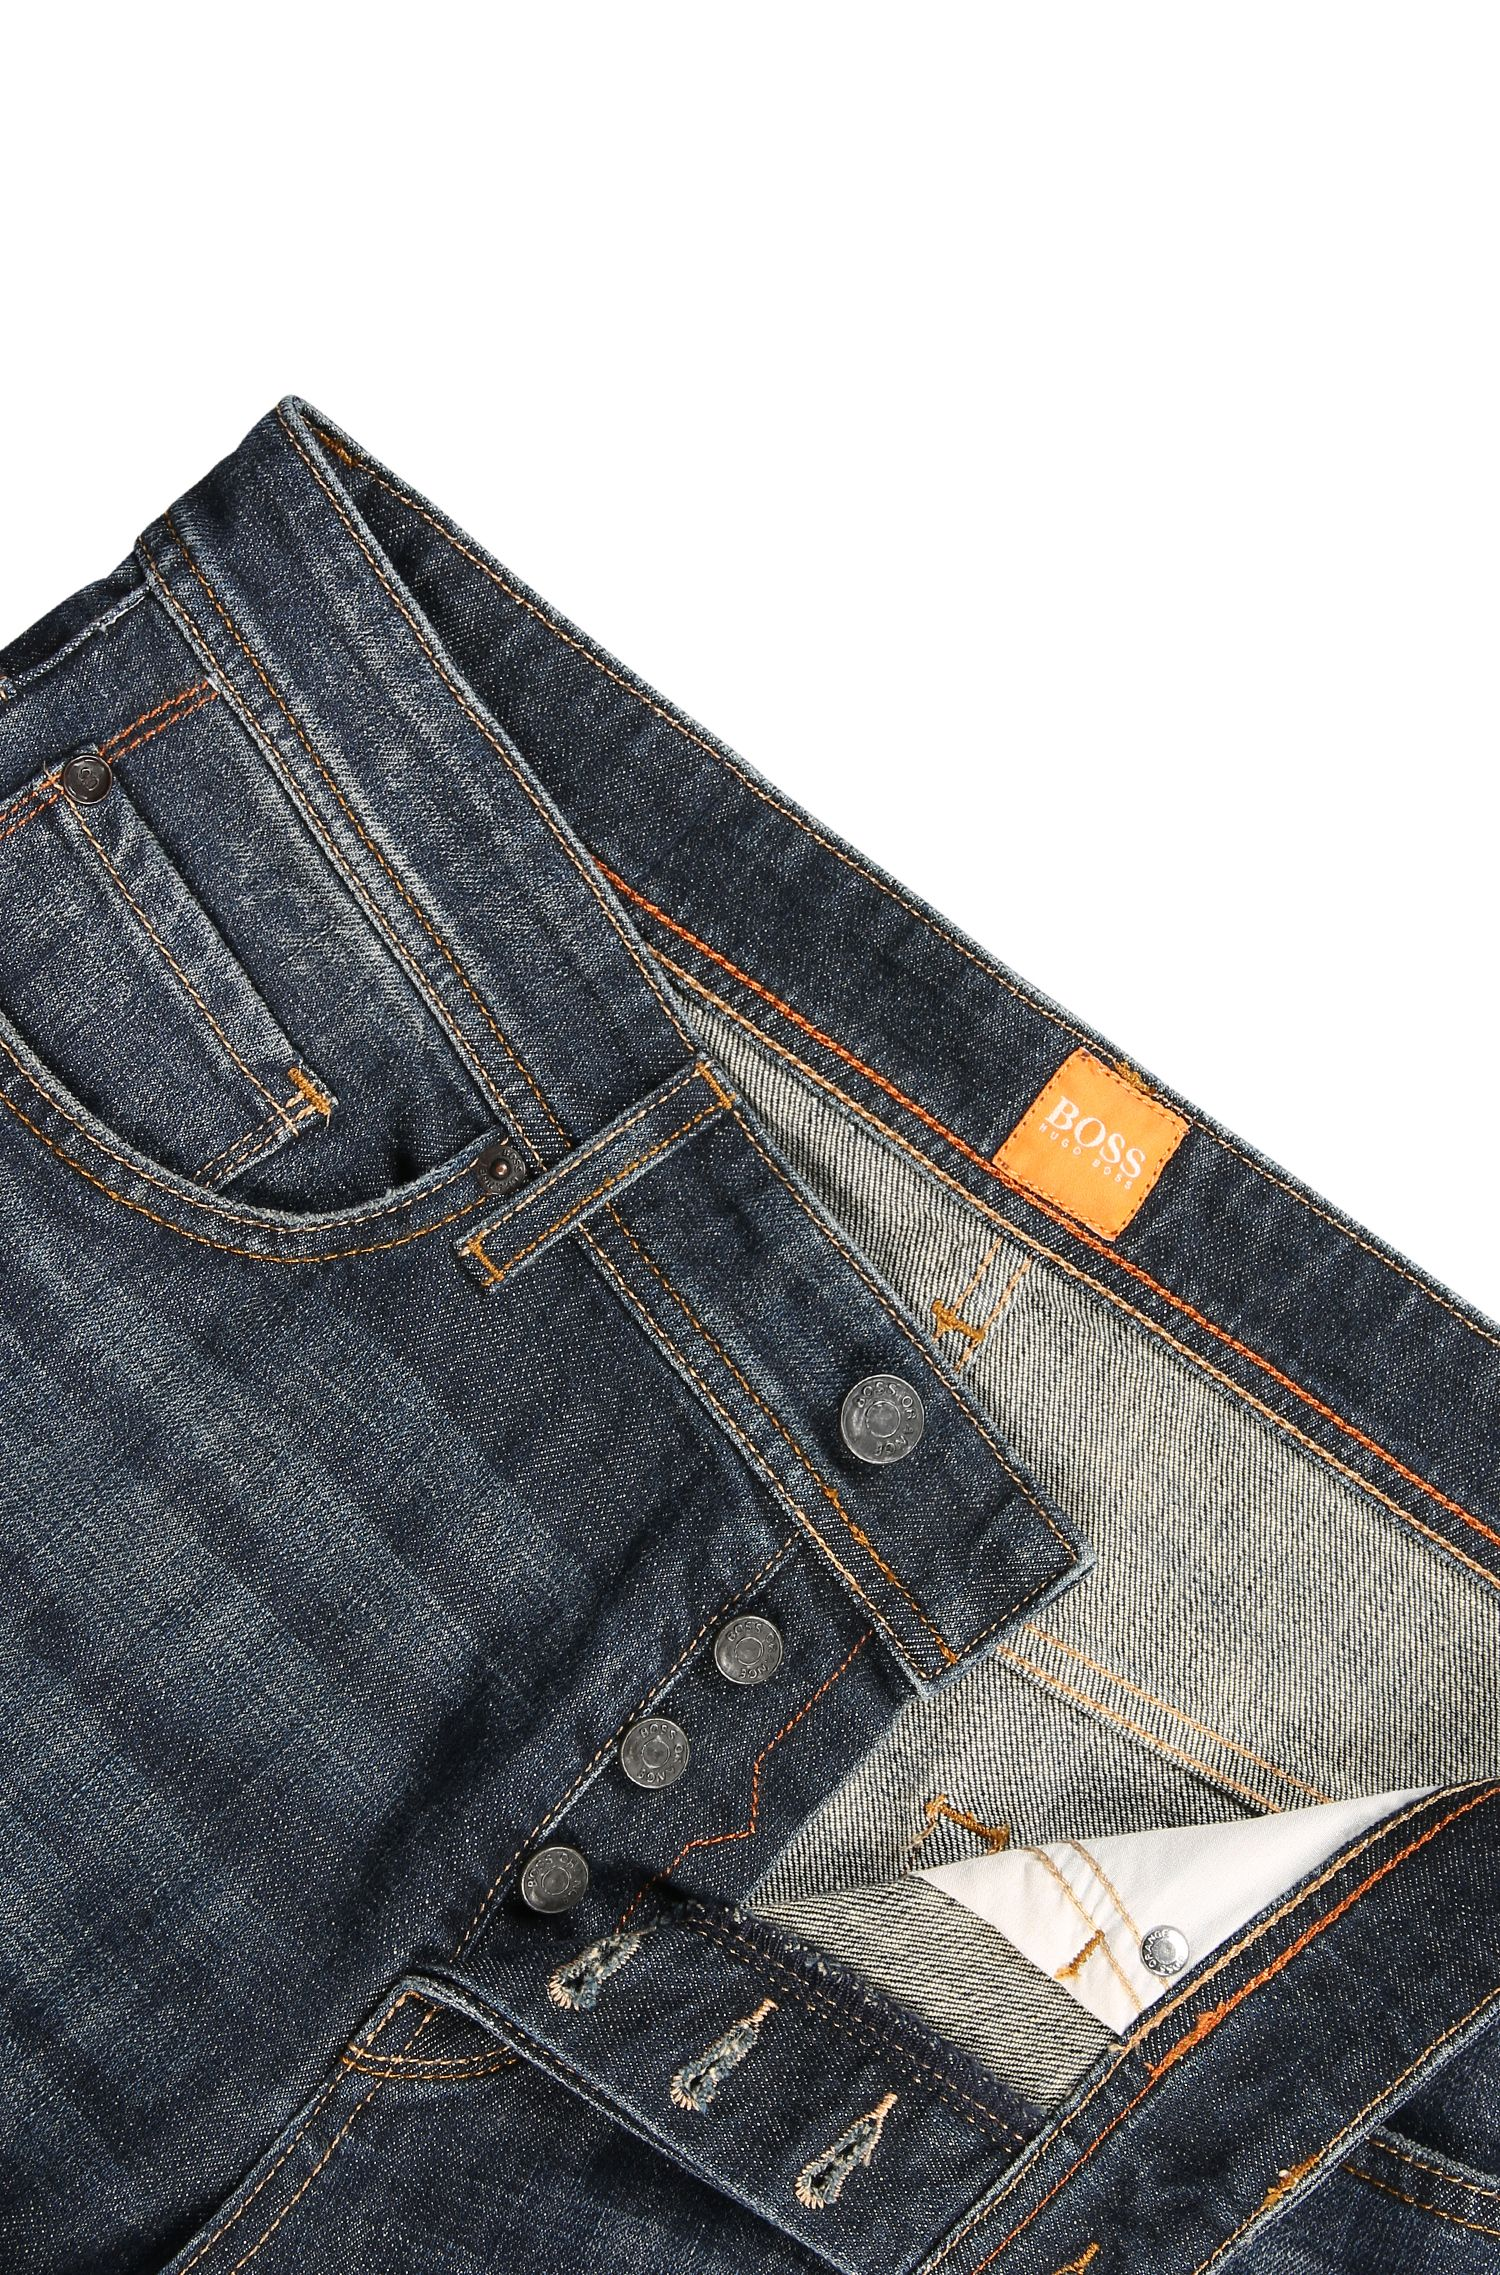 Vaqueros tapered fit en denim elástico compacto